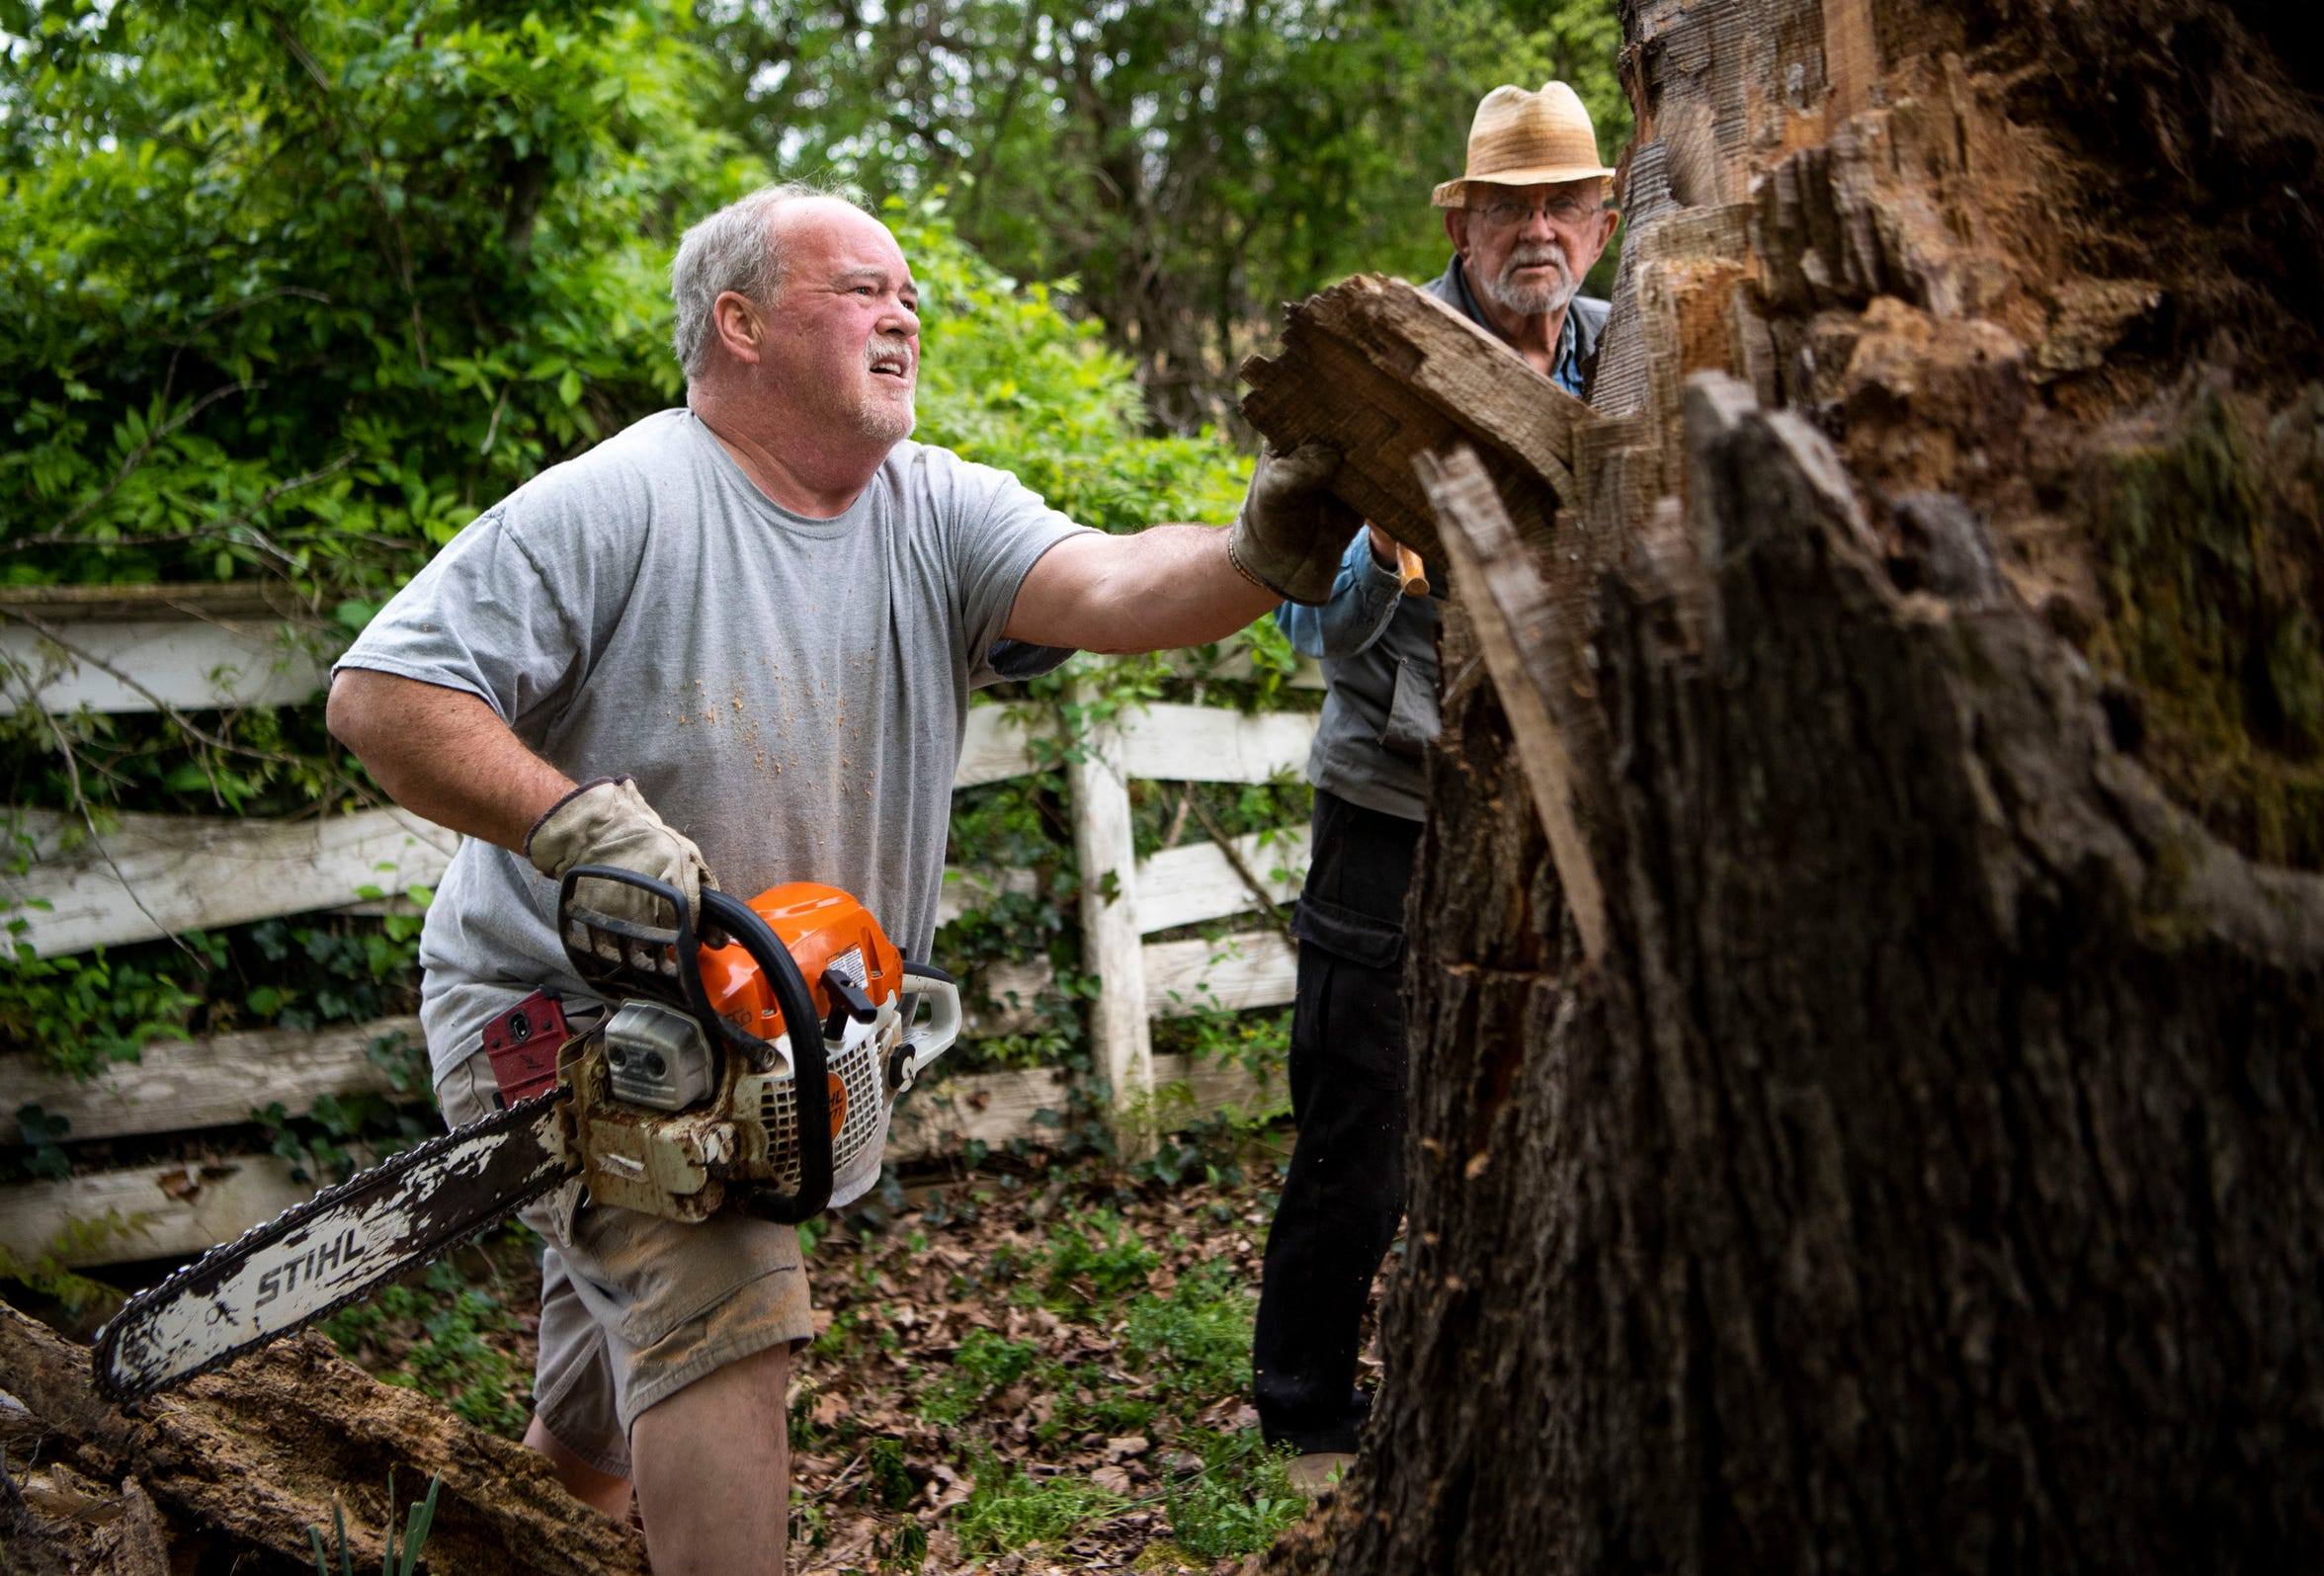 Larry Elmore, left, uses a chain saw to cut into a fallen tree stump on the Cookeville, Tenn., farm of Dr. Sam Barnes on April 17, 2019.